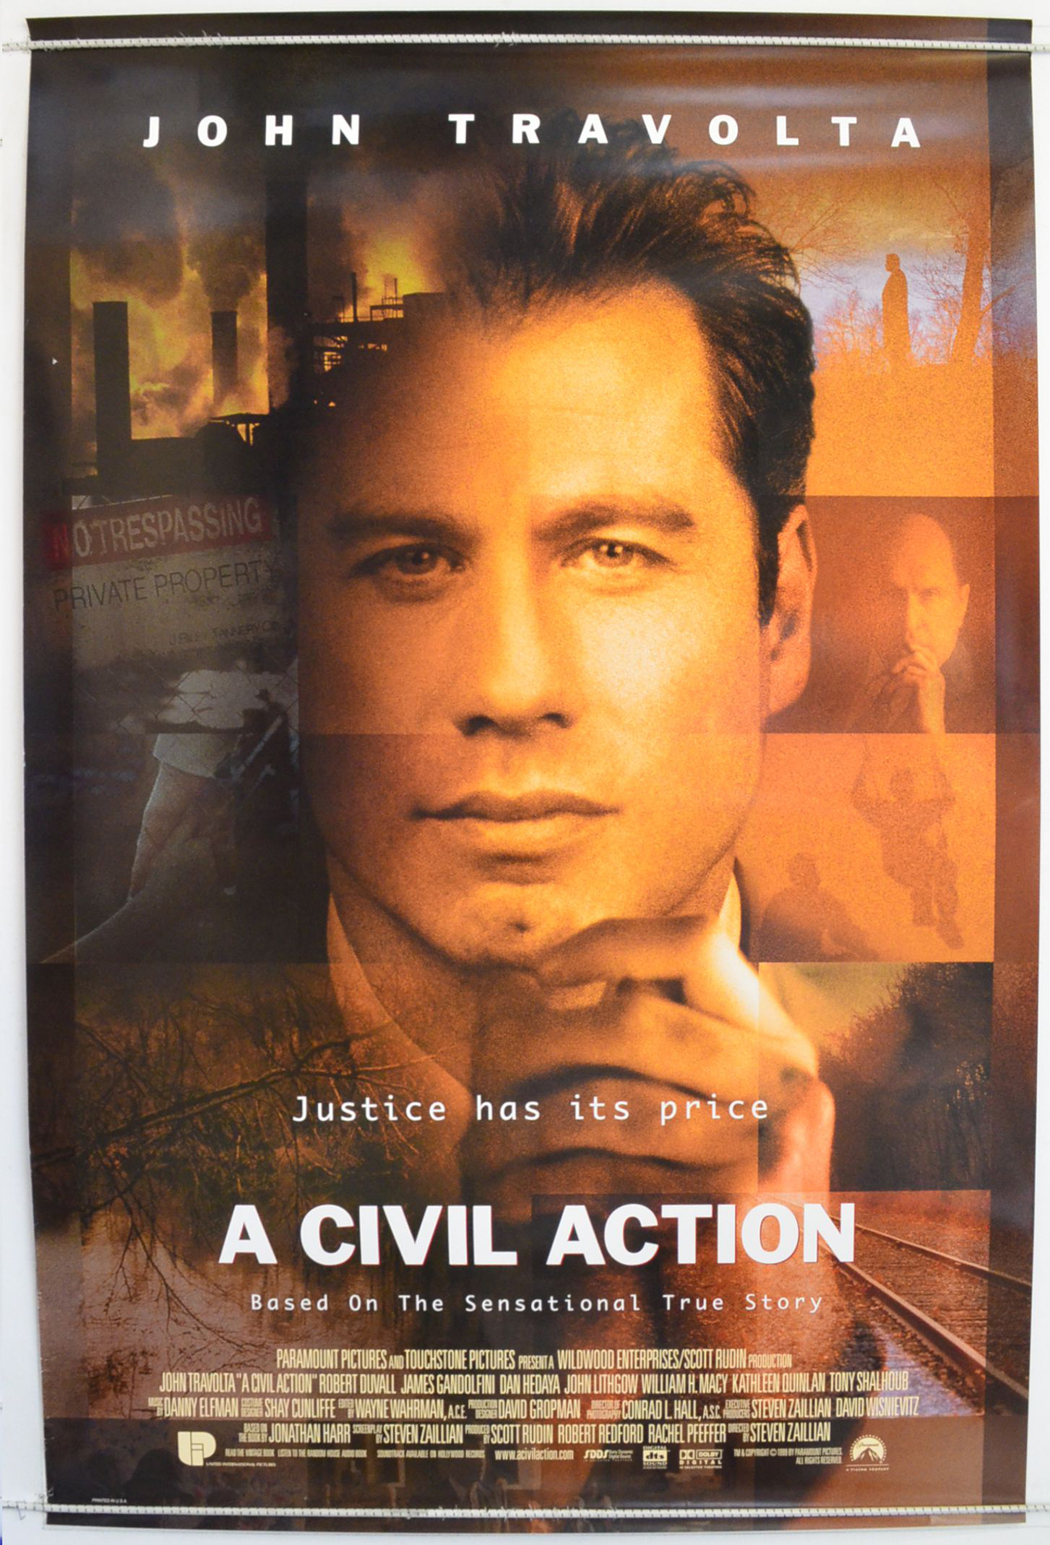 film analysis a civil action Liberty university digitalcommons@liberty university faculty publications and presentations helms school of government 1997 jonathan harr: a civil action study guide.